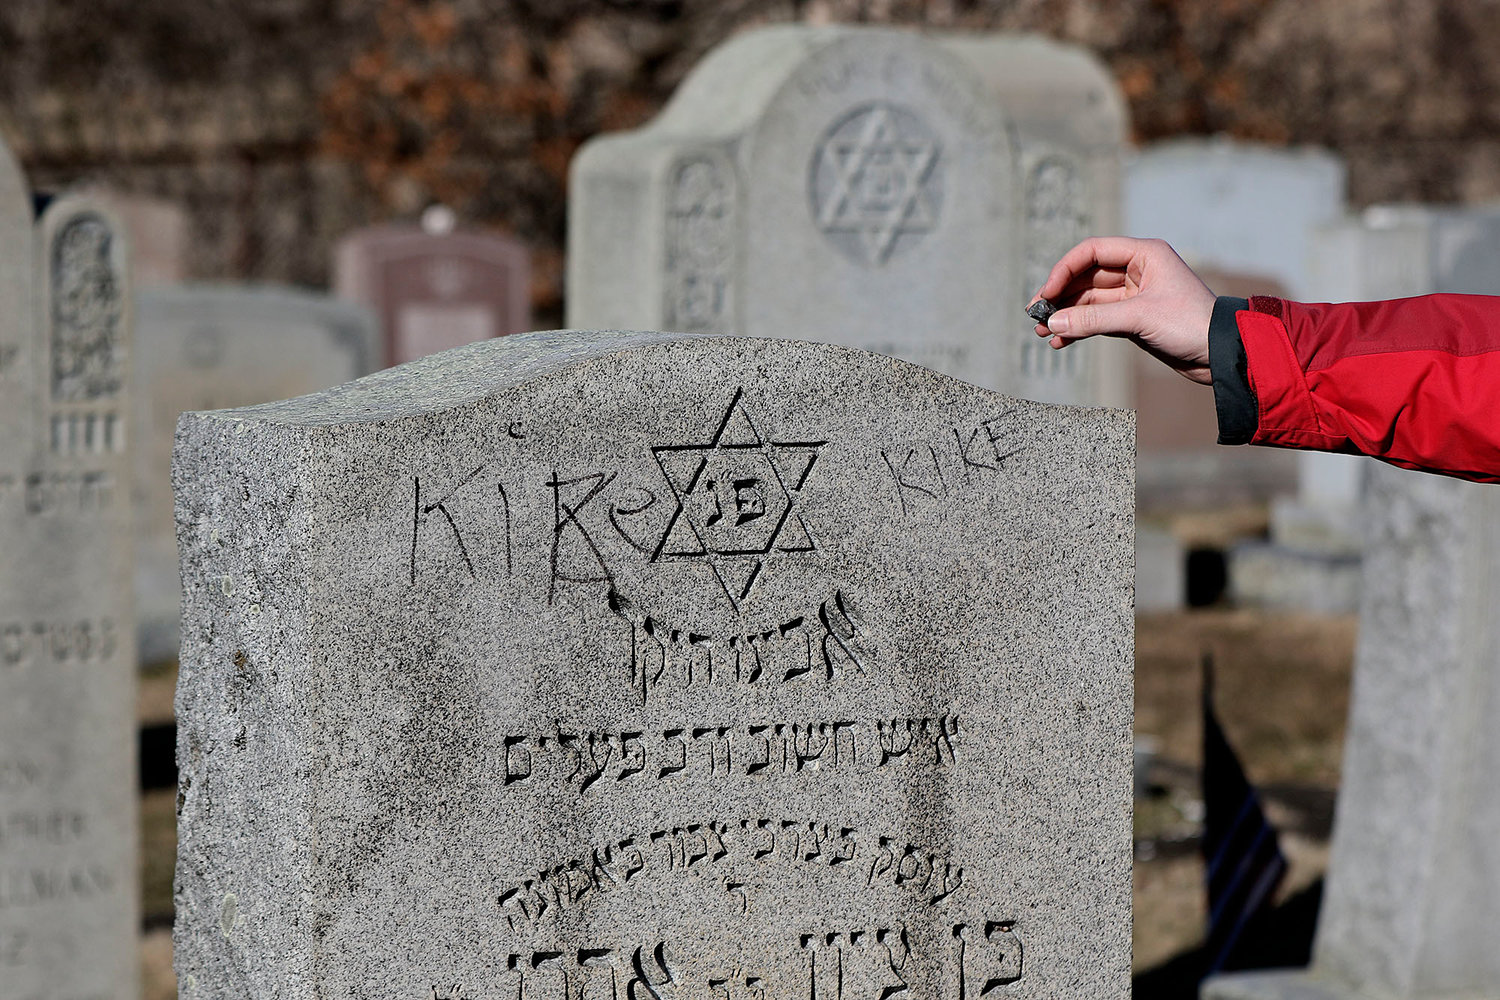 Ethan Gitlin, of Providence, places a stone on a grave marker.